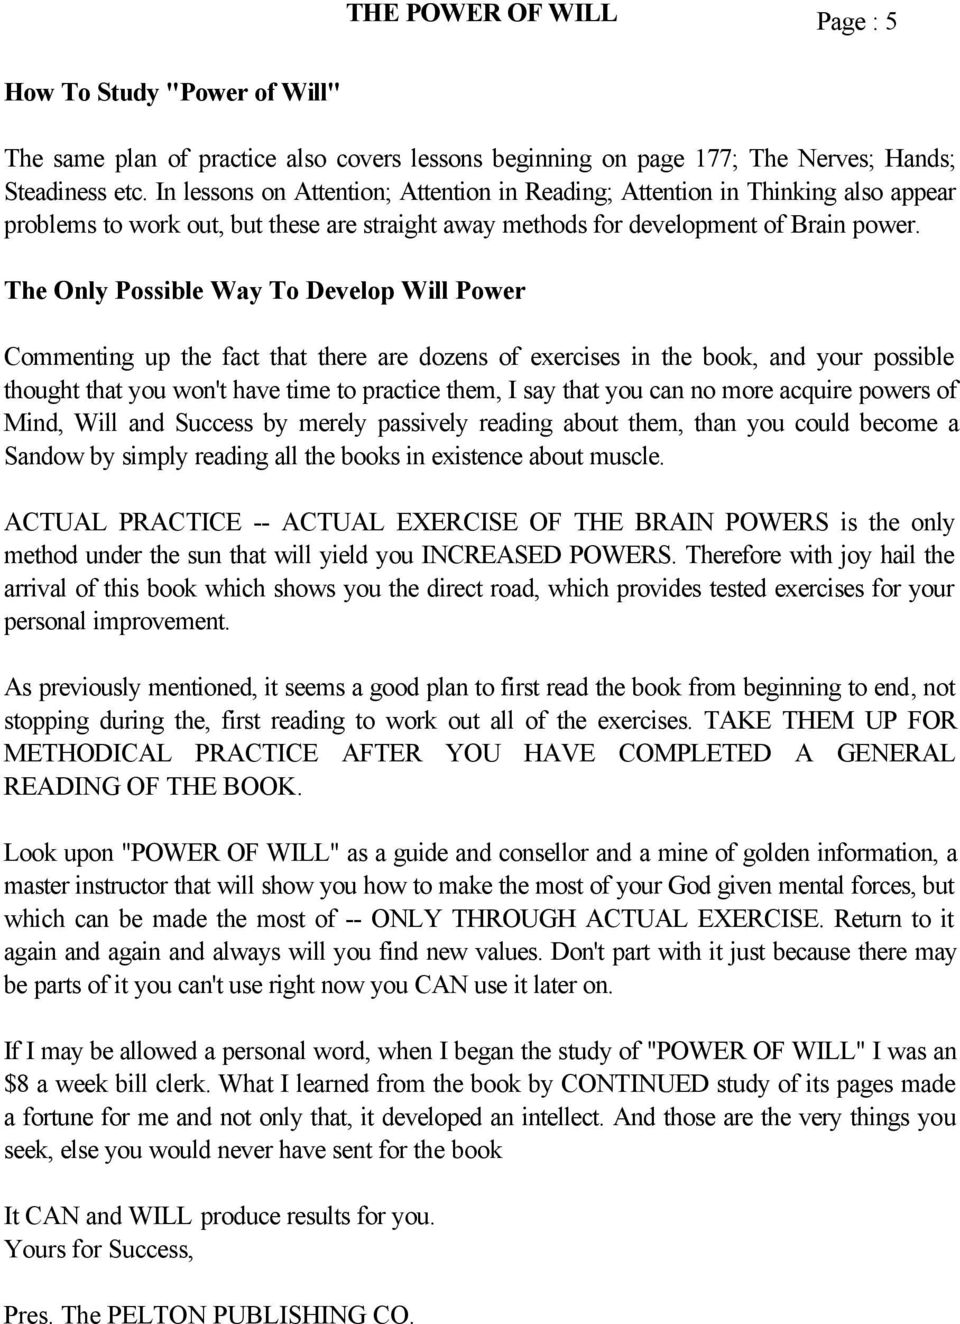 The Only Possible Way To Develop Will Power Commenting up the fact that there are dozens of exercises in the book, and your possible thought that you won't have time to practice them, I say that you